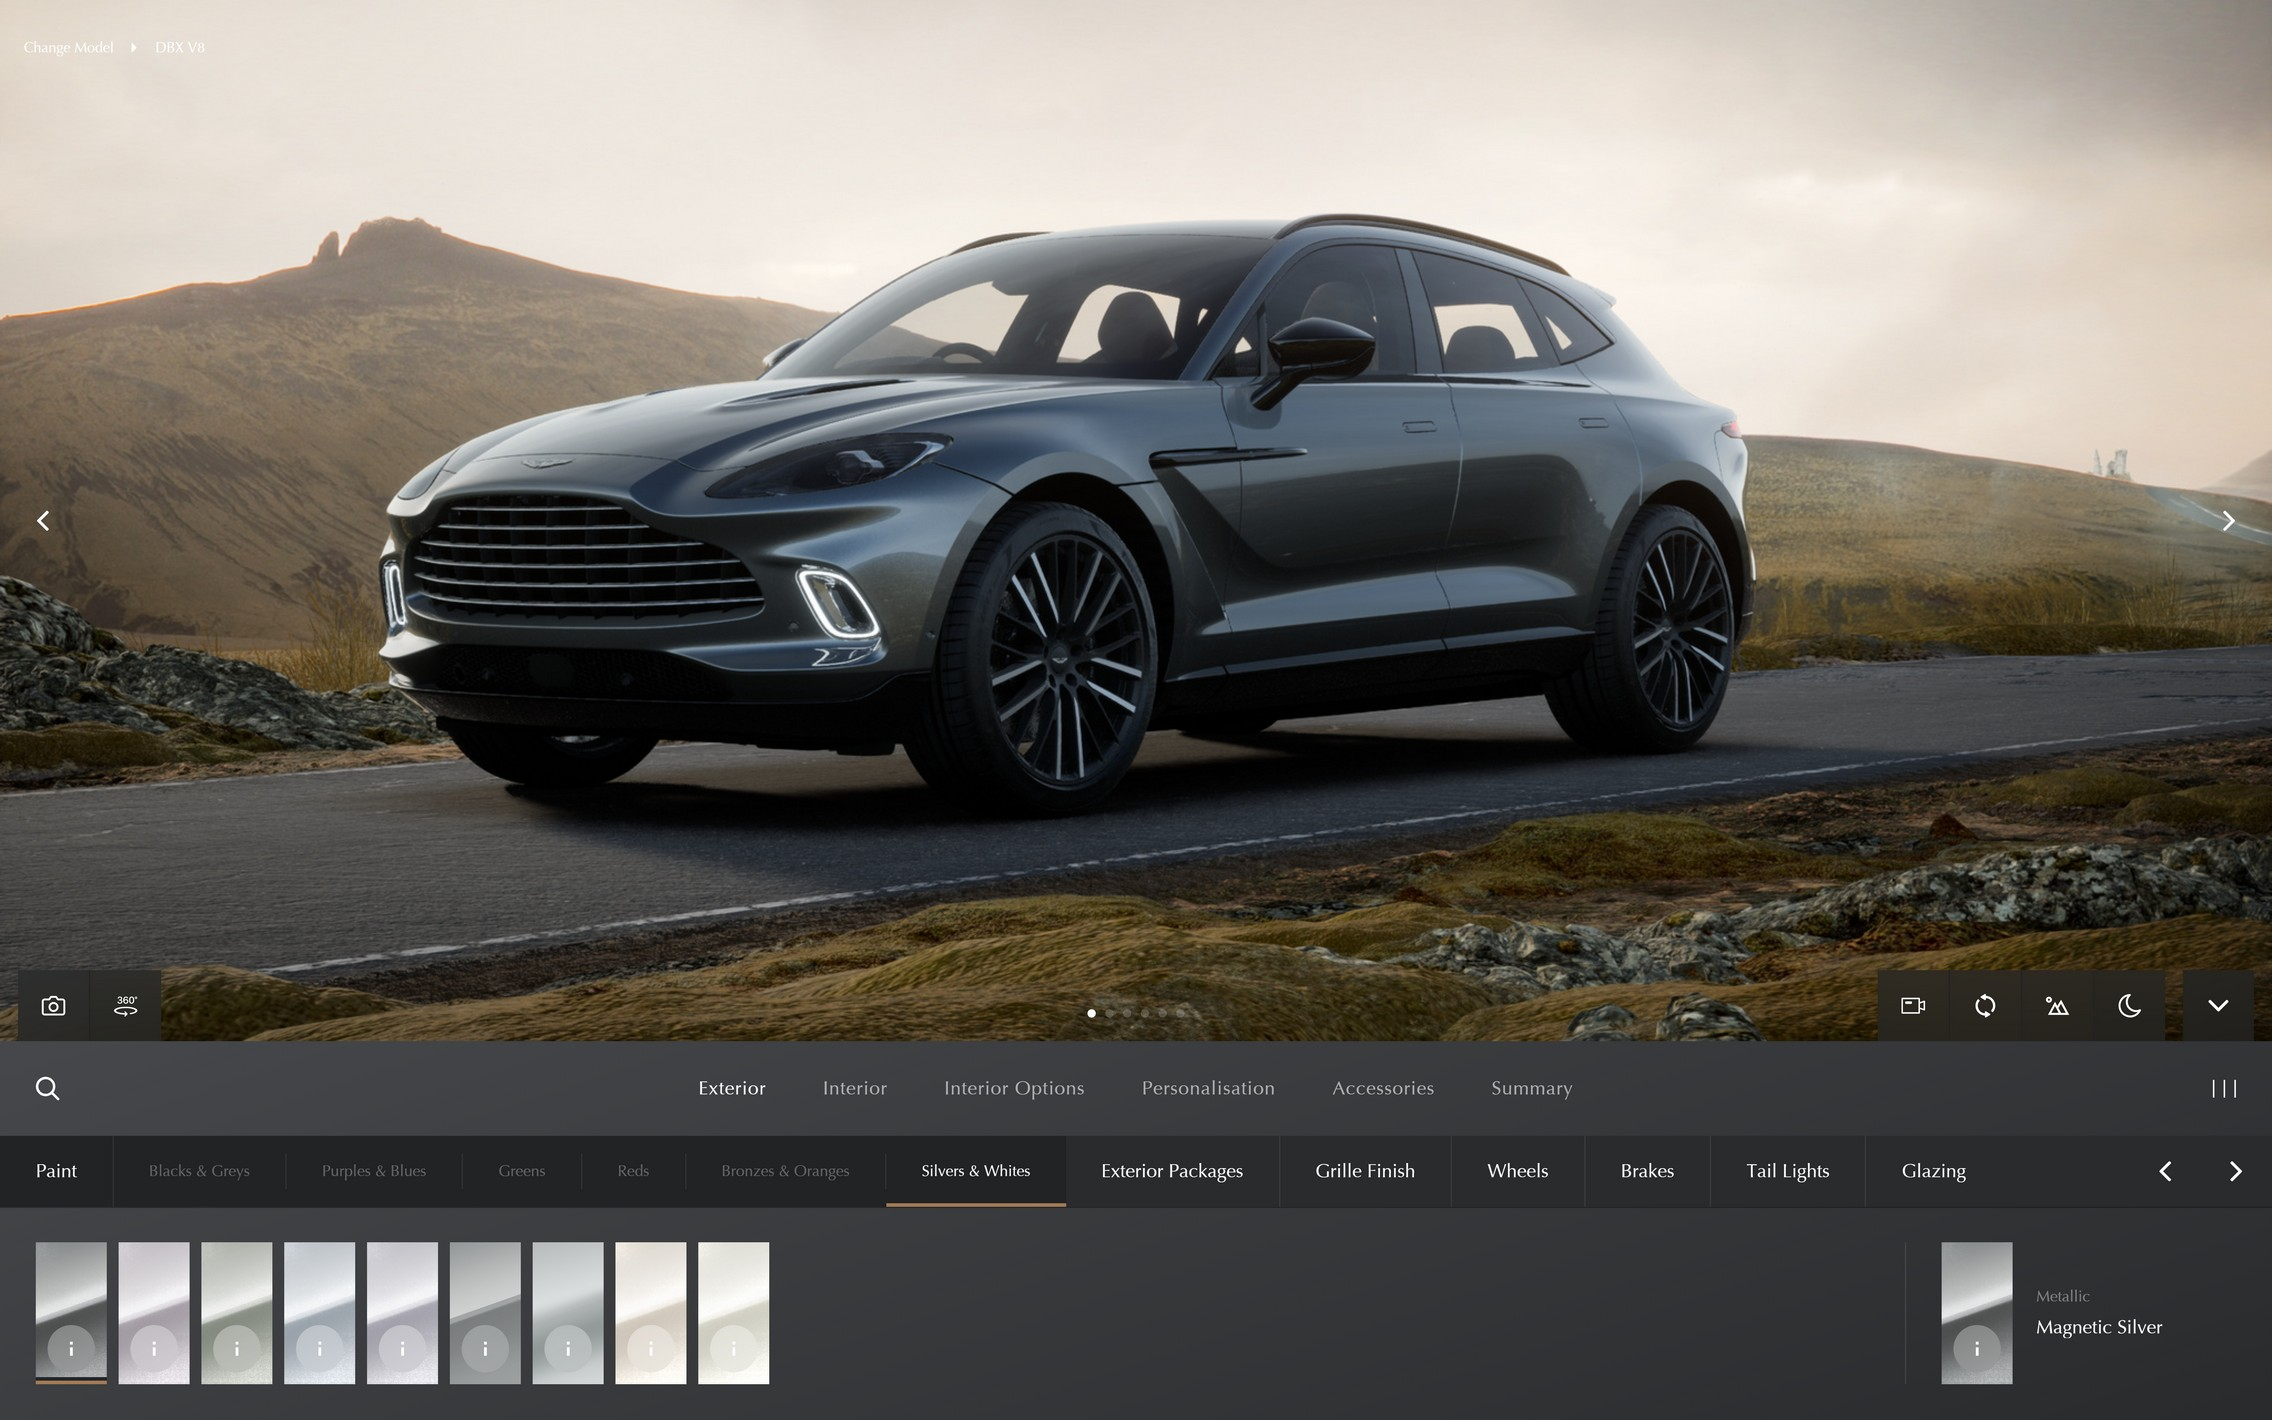 Aston Martin's Project Horizon strategy envisions better communication with customers, and the latest 3D car configurator that appeared on the carmaker's website this week looks like it could go a long way towards achieving that goal.